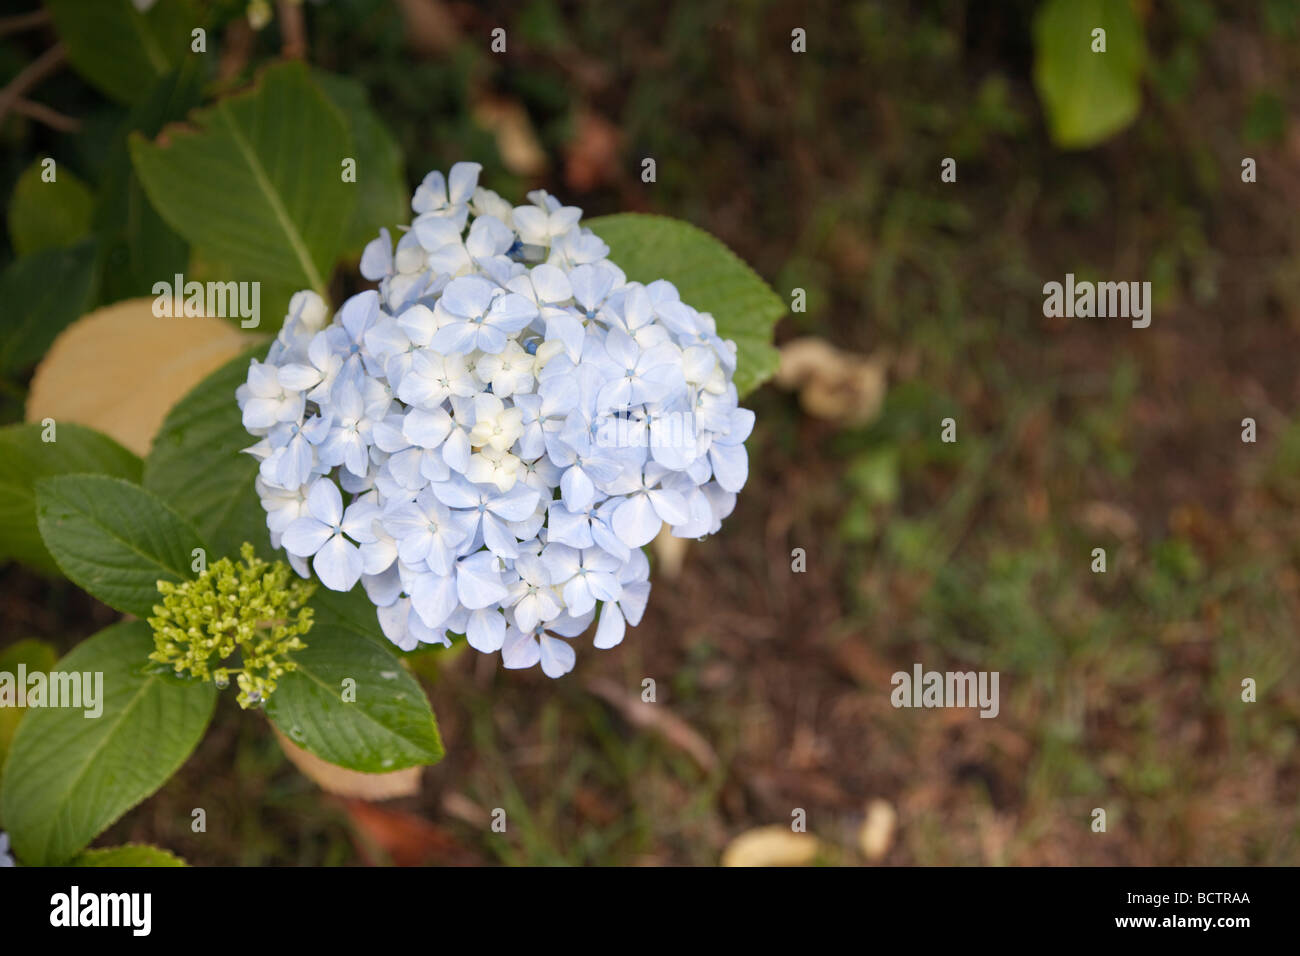 Britain UK Close up of blue Hydrangea flower head - Stock Image